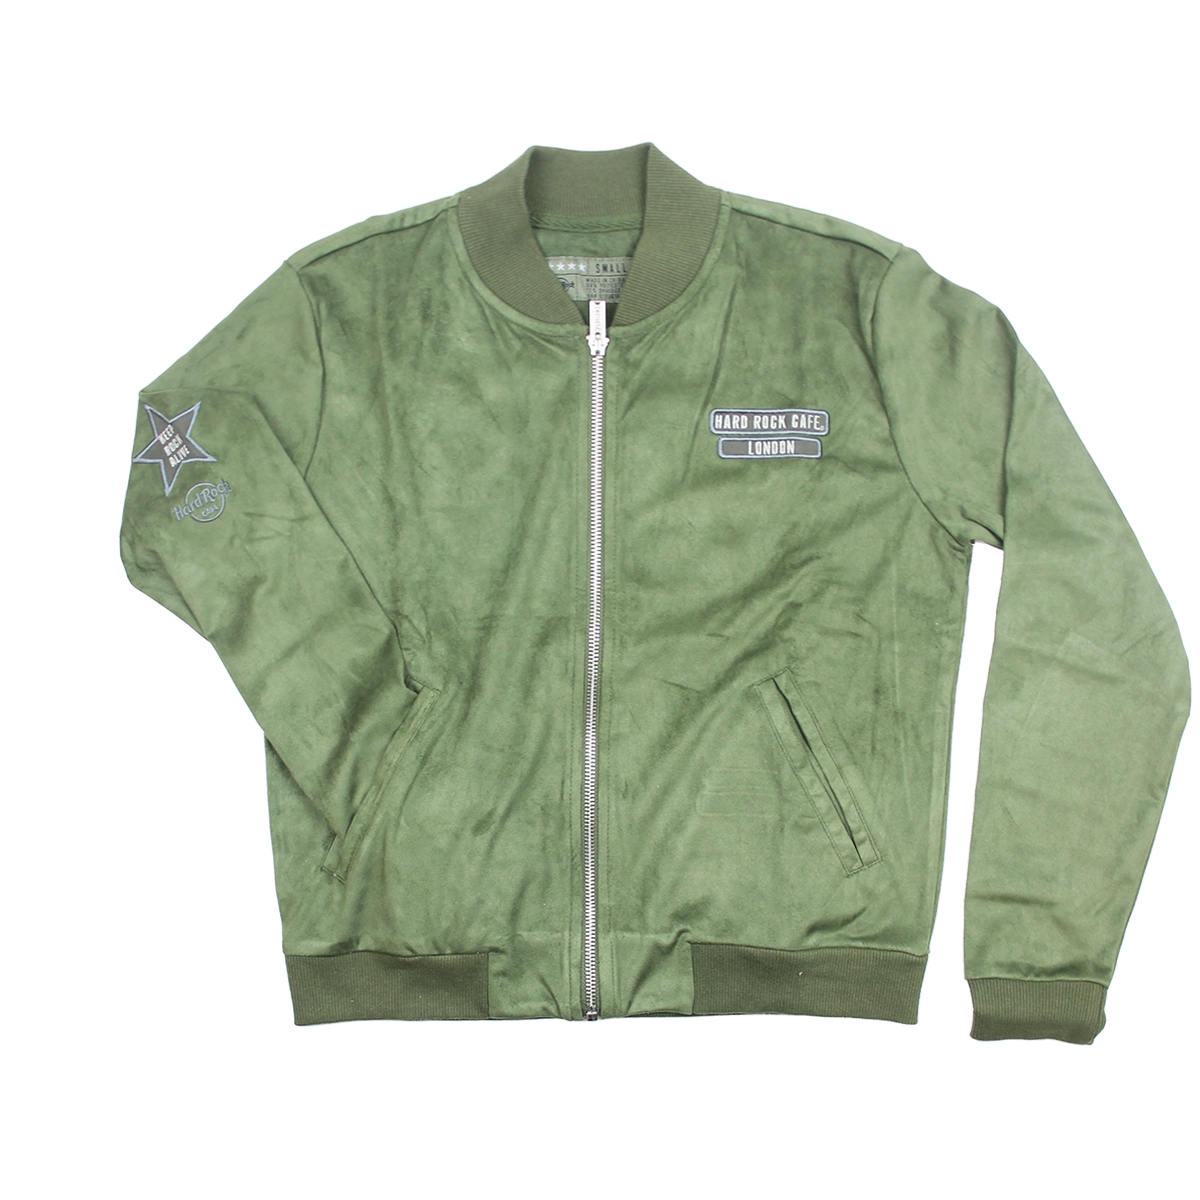 Ladies Sueded Bomber Jacket Military Green London 0